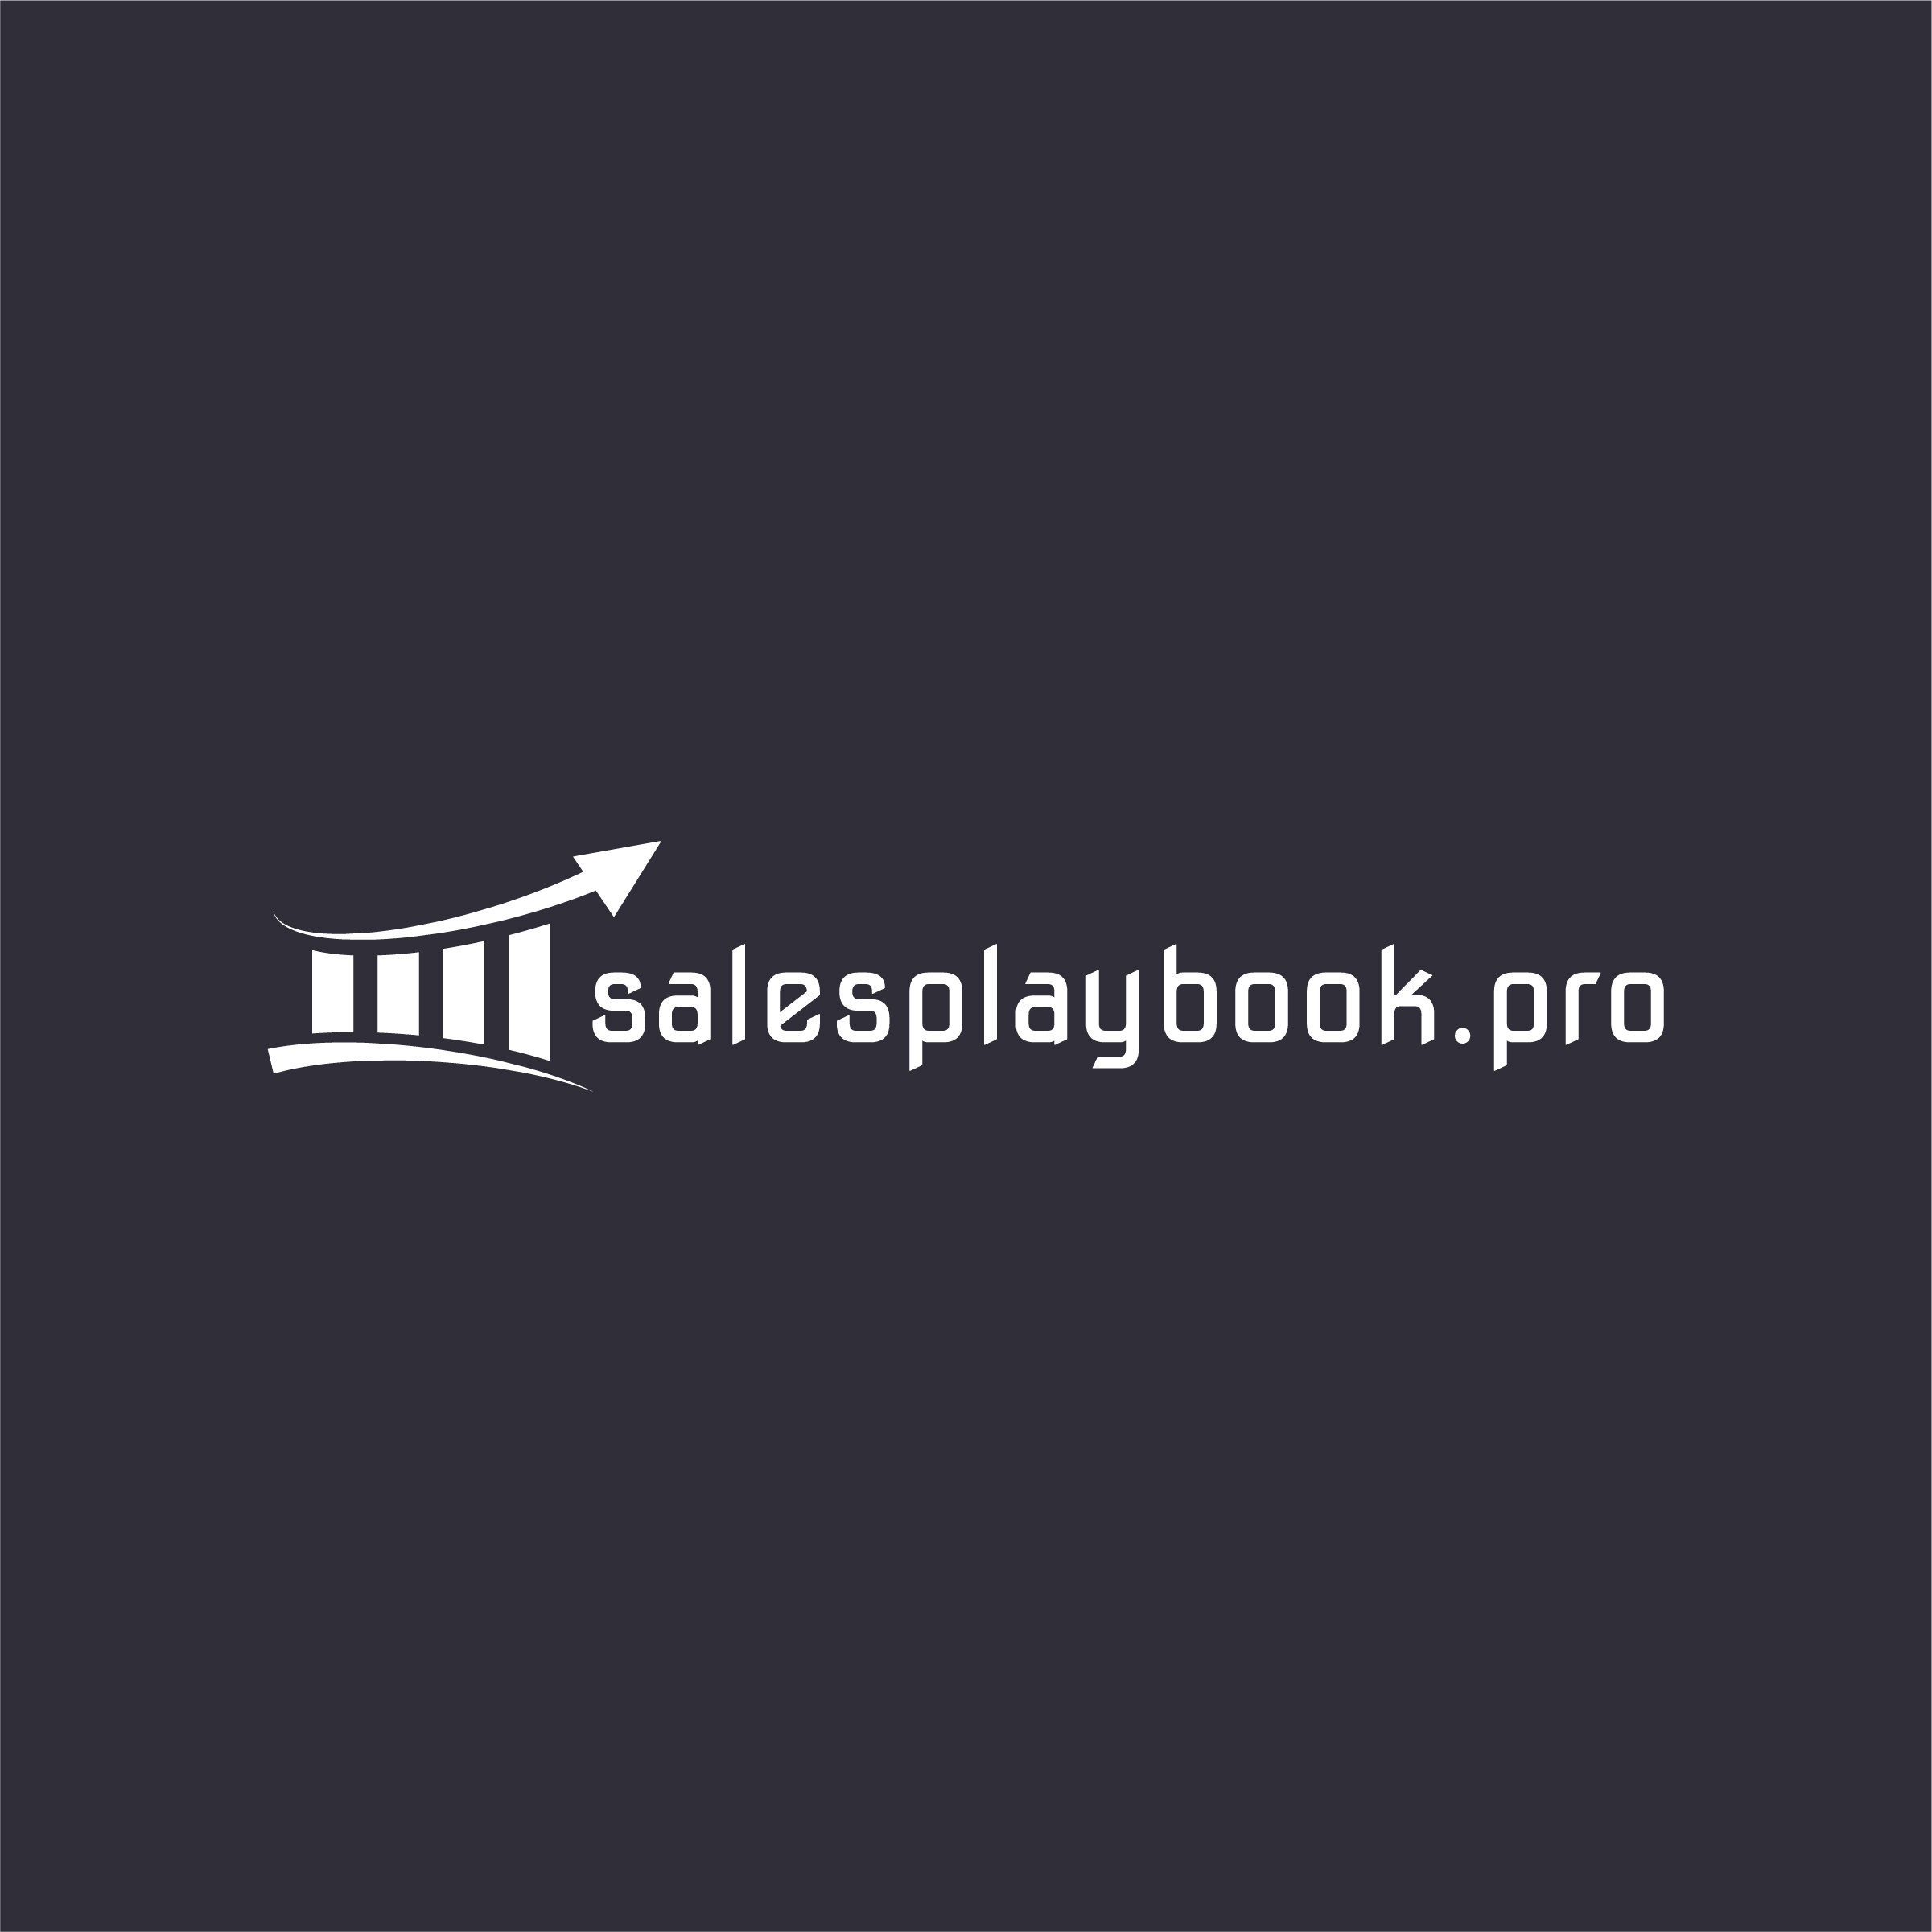 This is the logo of Salesplaybook